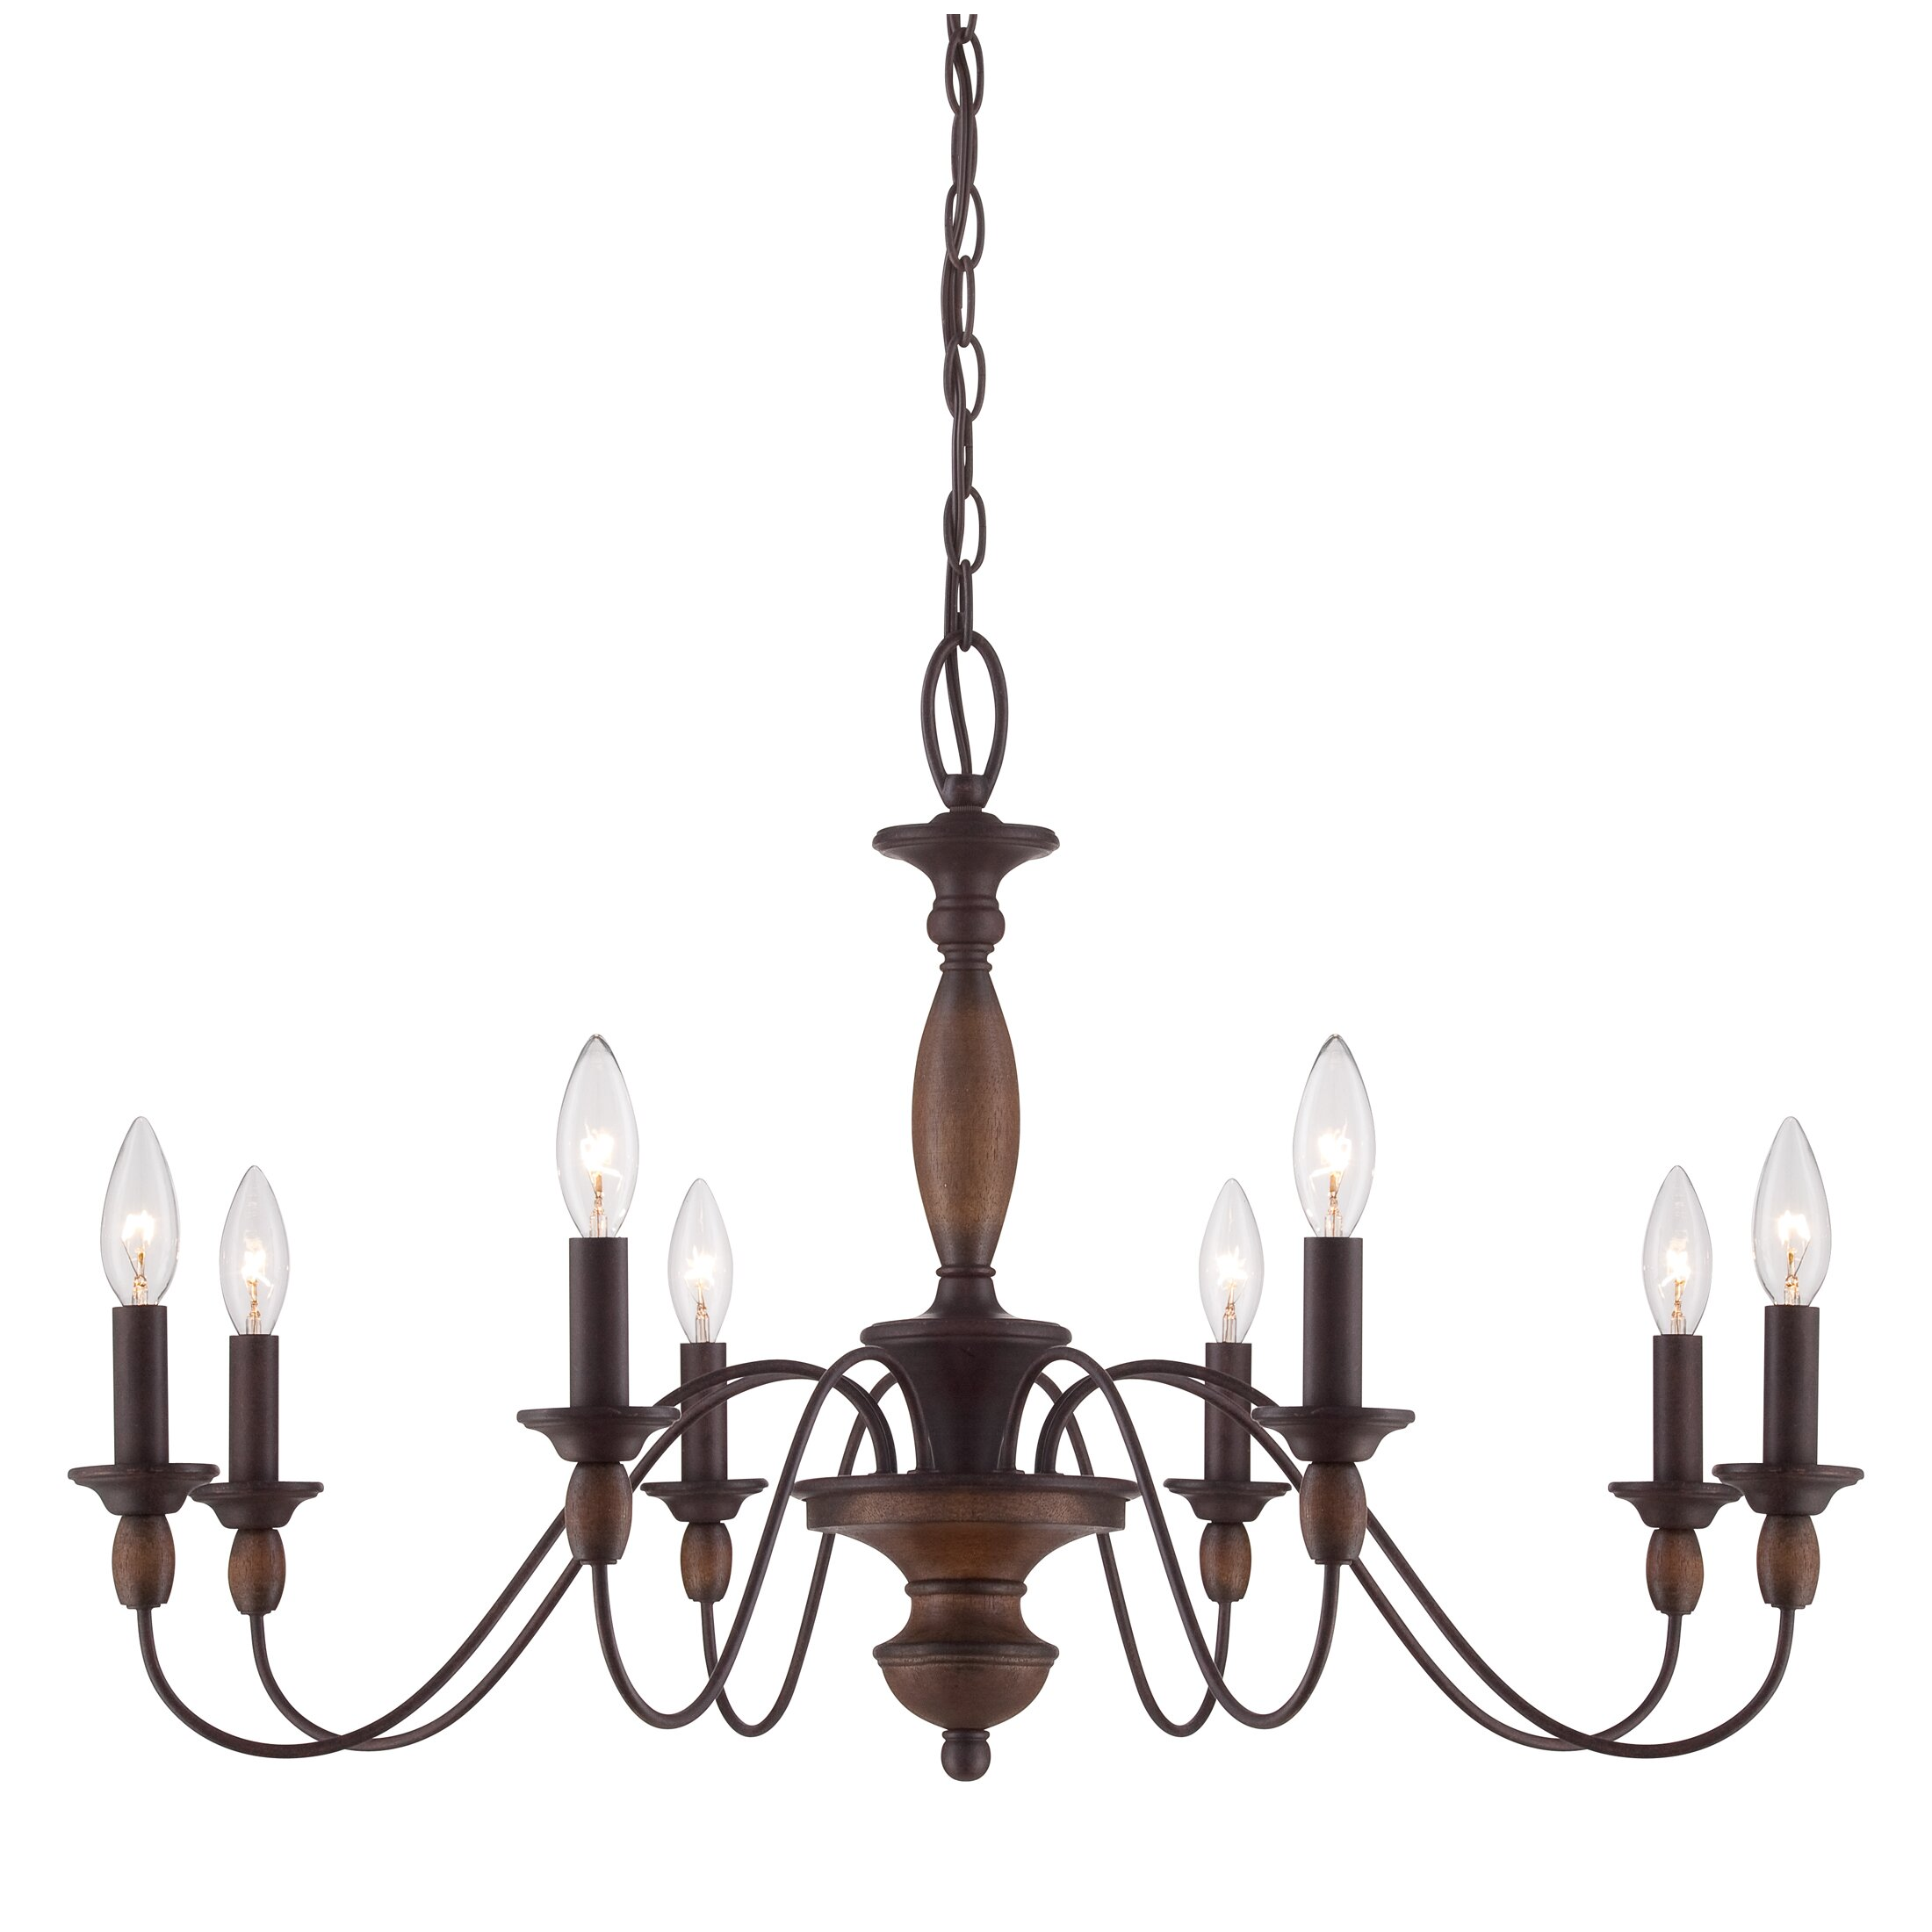 Quoizel Holbrook 8Light CandleStyle Chandelier Reviews – Quoizel Chandelier